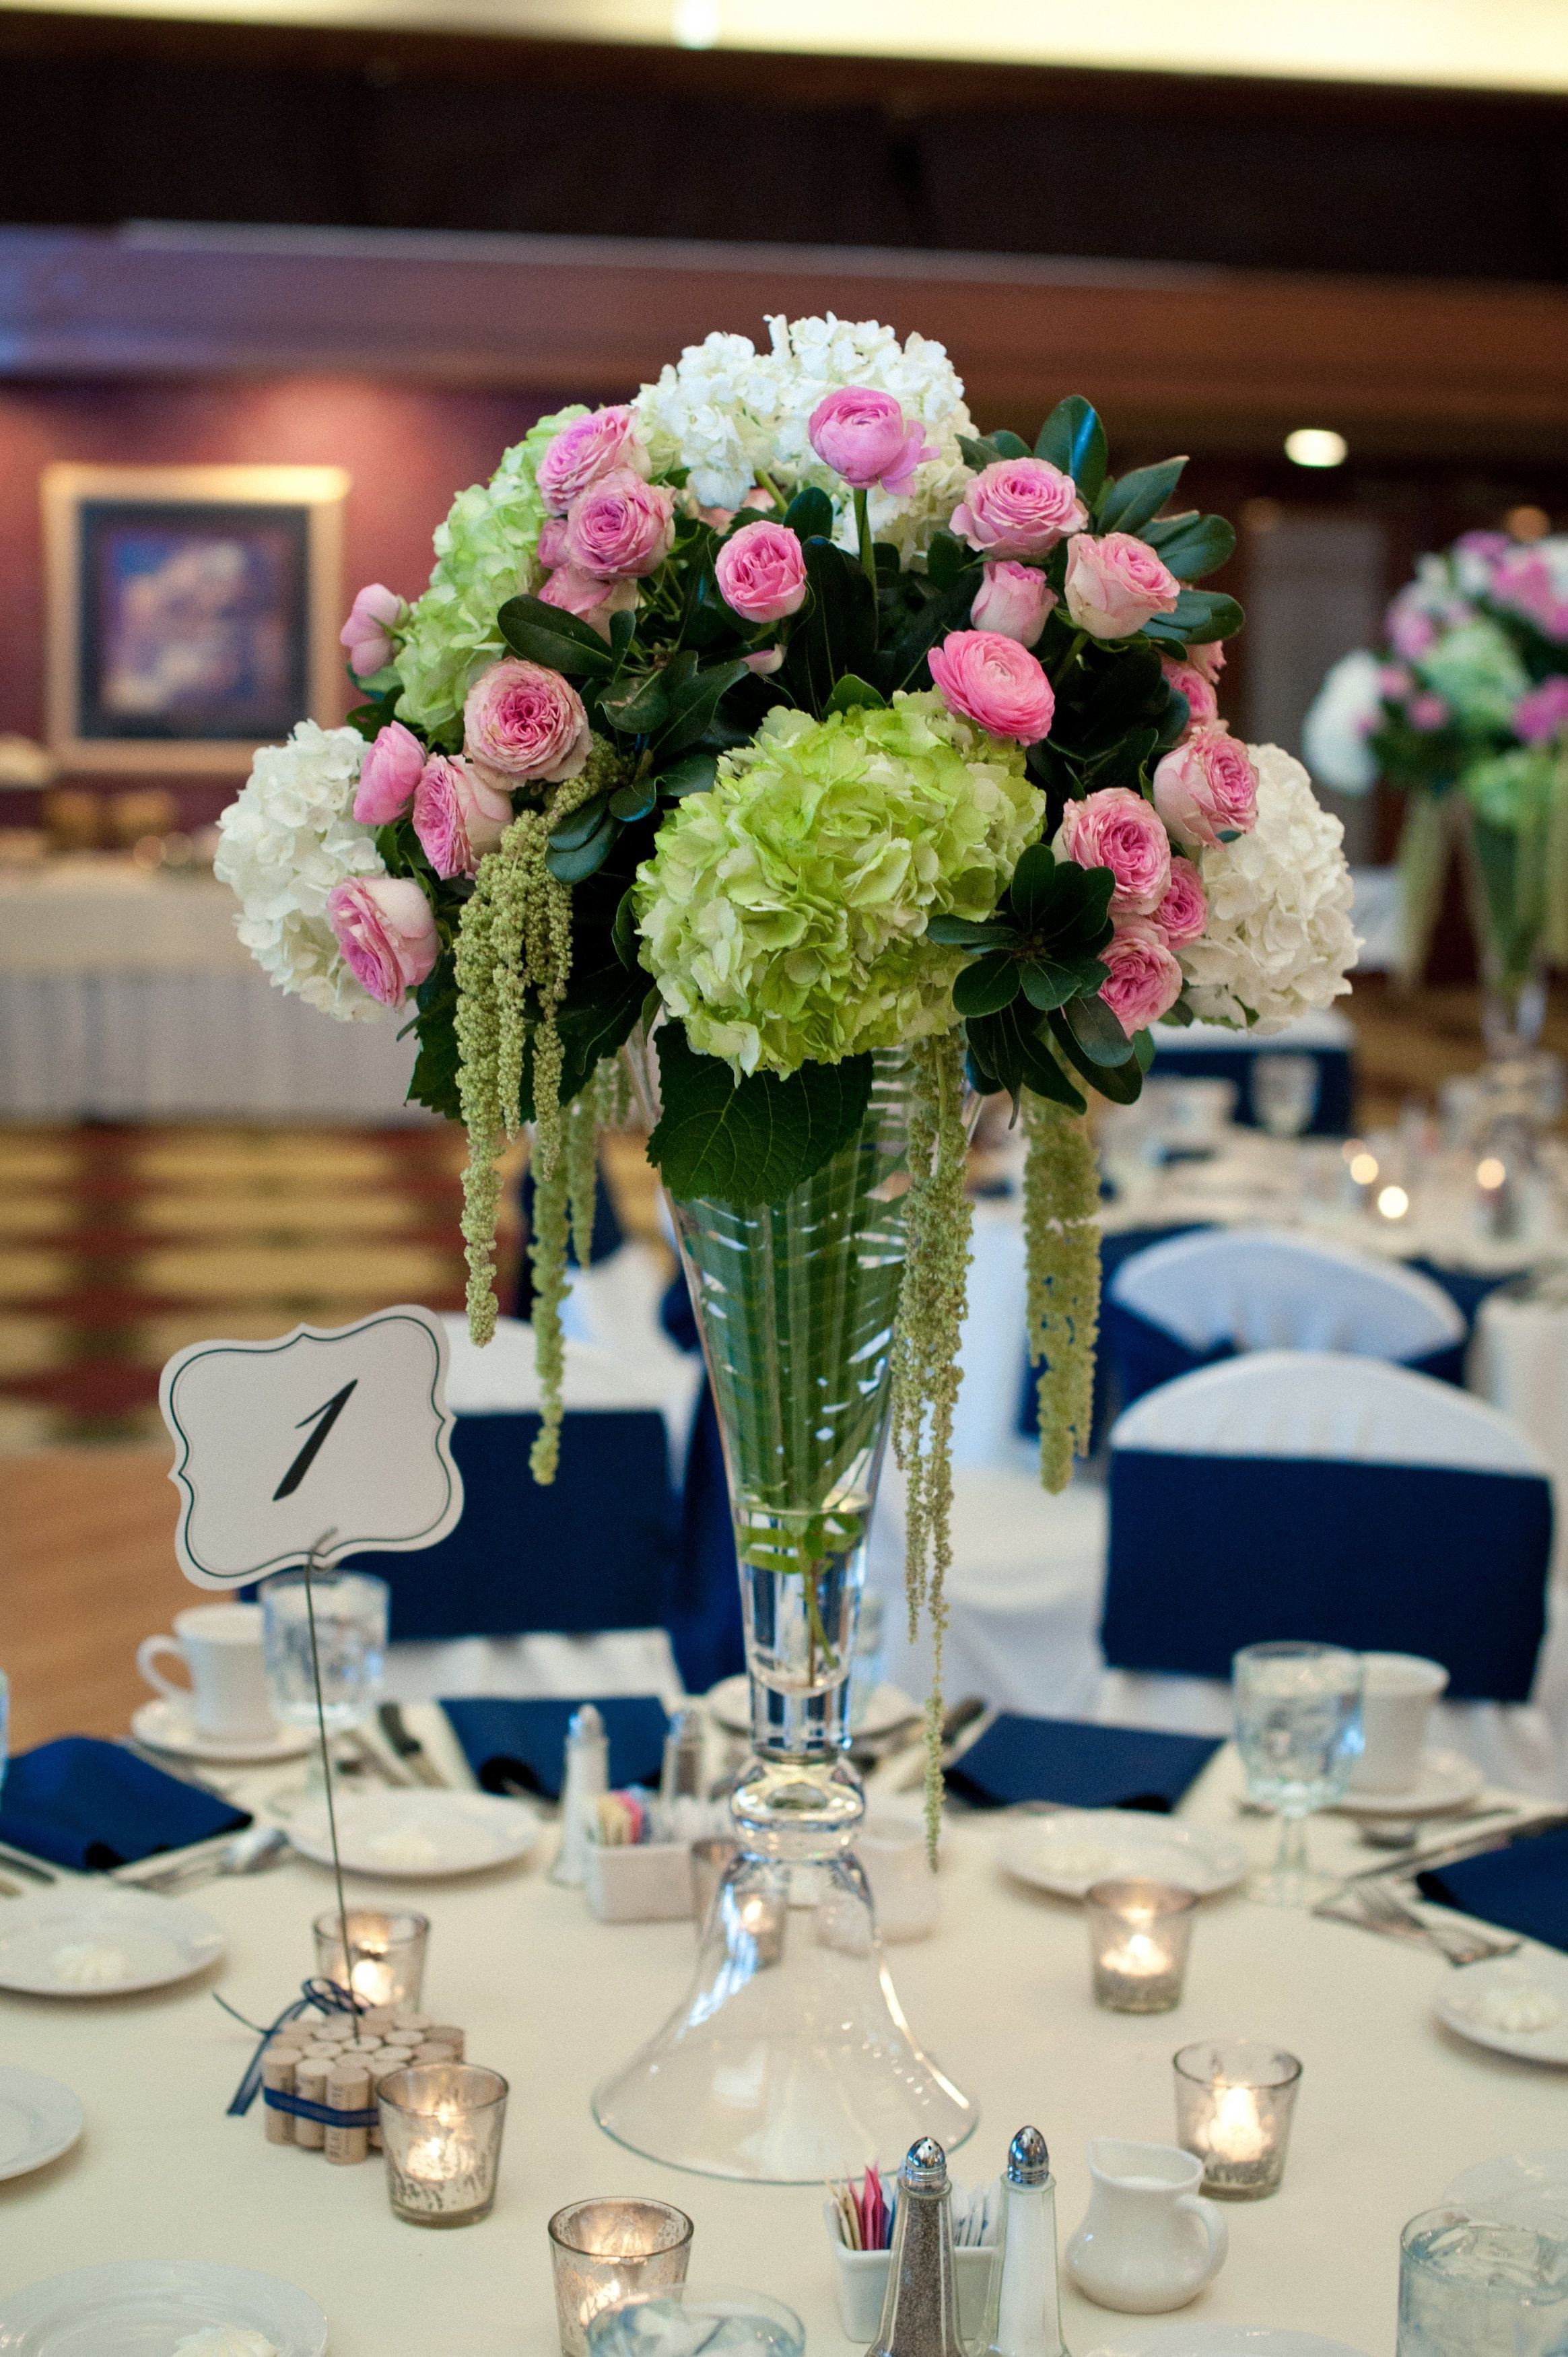 tall gold vases for wedding centerpieces of tall wedding centerpieces green hydrangea pink garden roses white with regard to tall wedding centerpieces green hydrangea pink garden roses white hydrangea and hanging green amaranthus karriehlistadesigns com